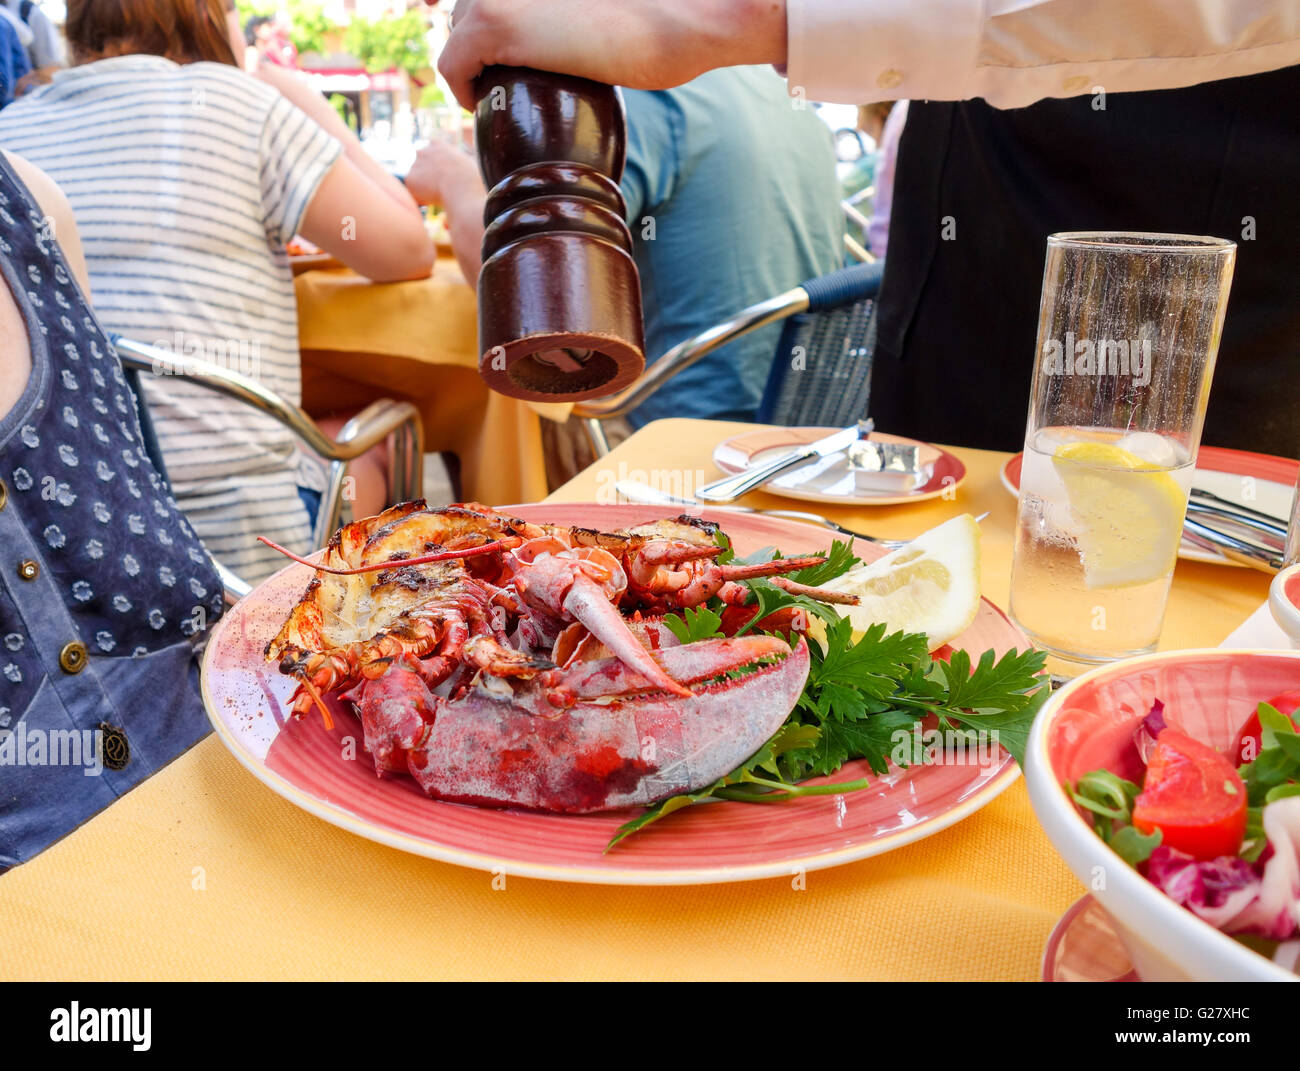 A Lobster dinner being sprinkled with black pepper from a pepper mill served outside at an outdoor cafe restaurant - Stock Image